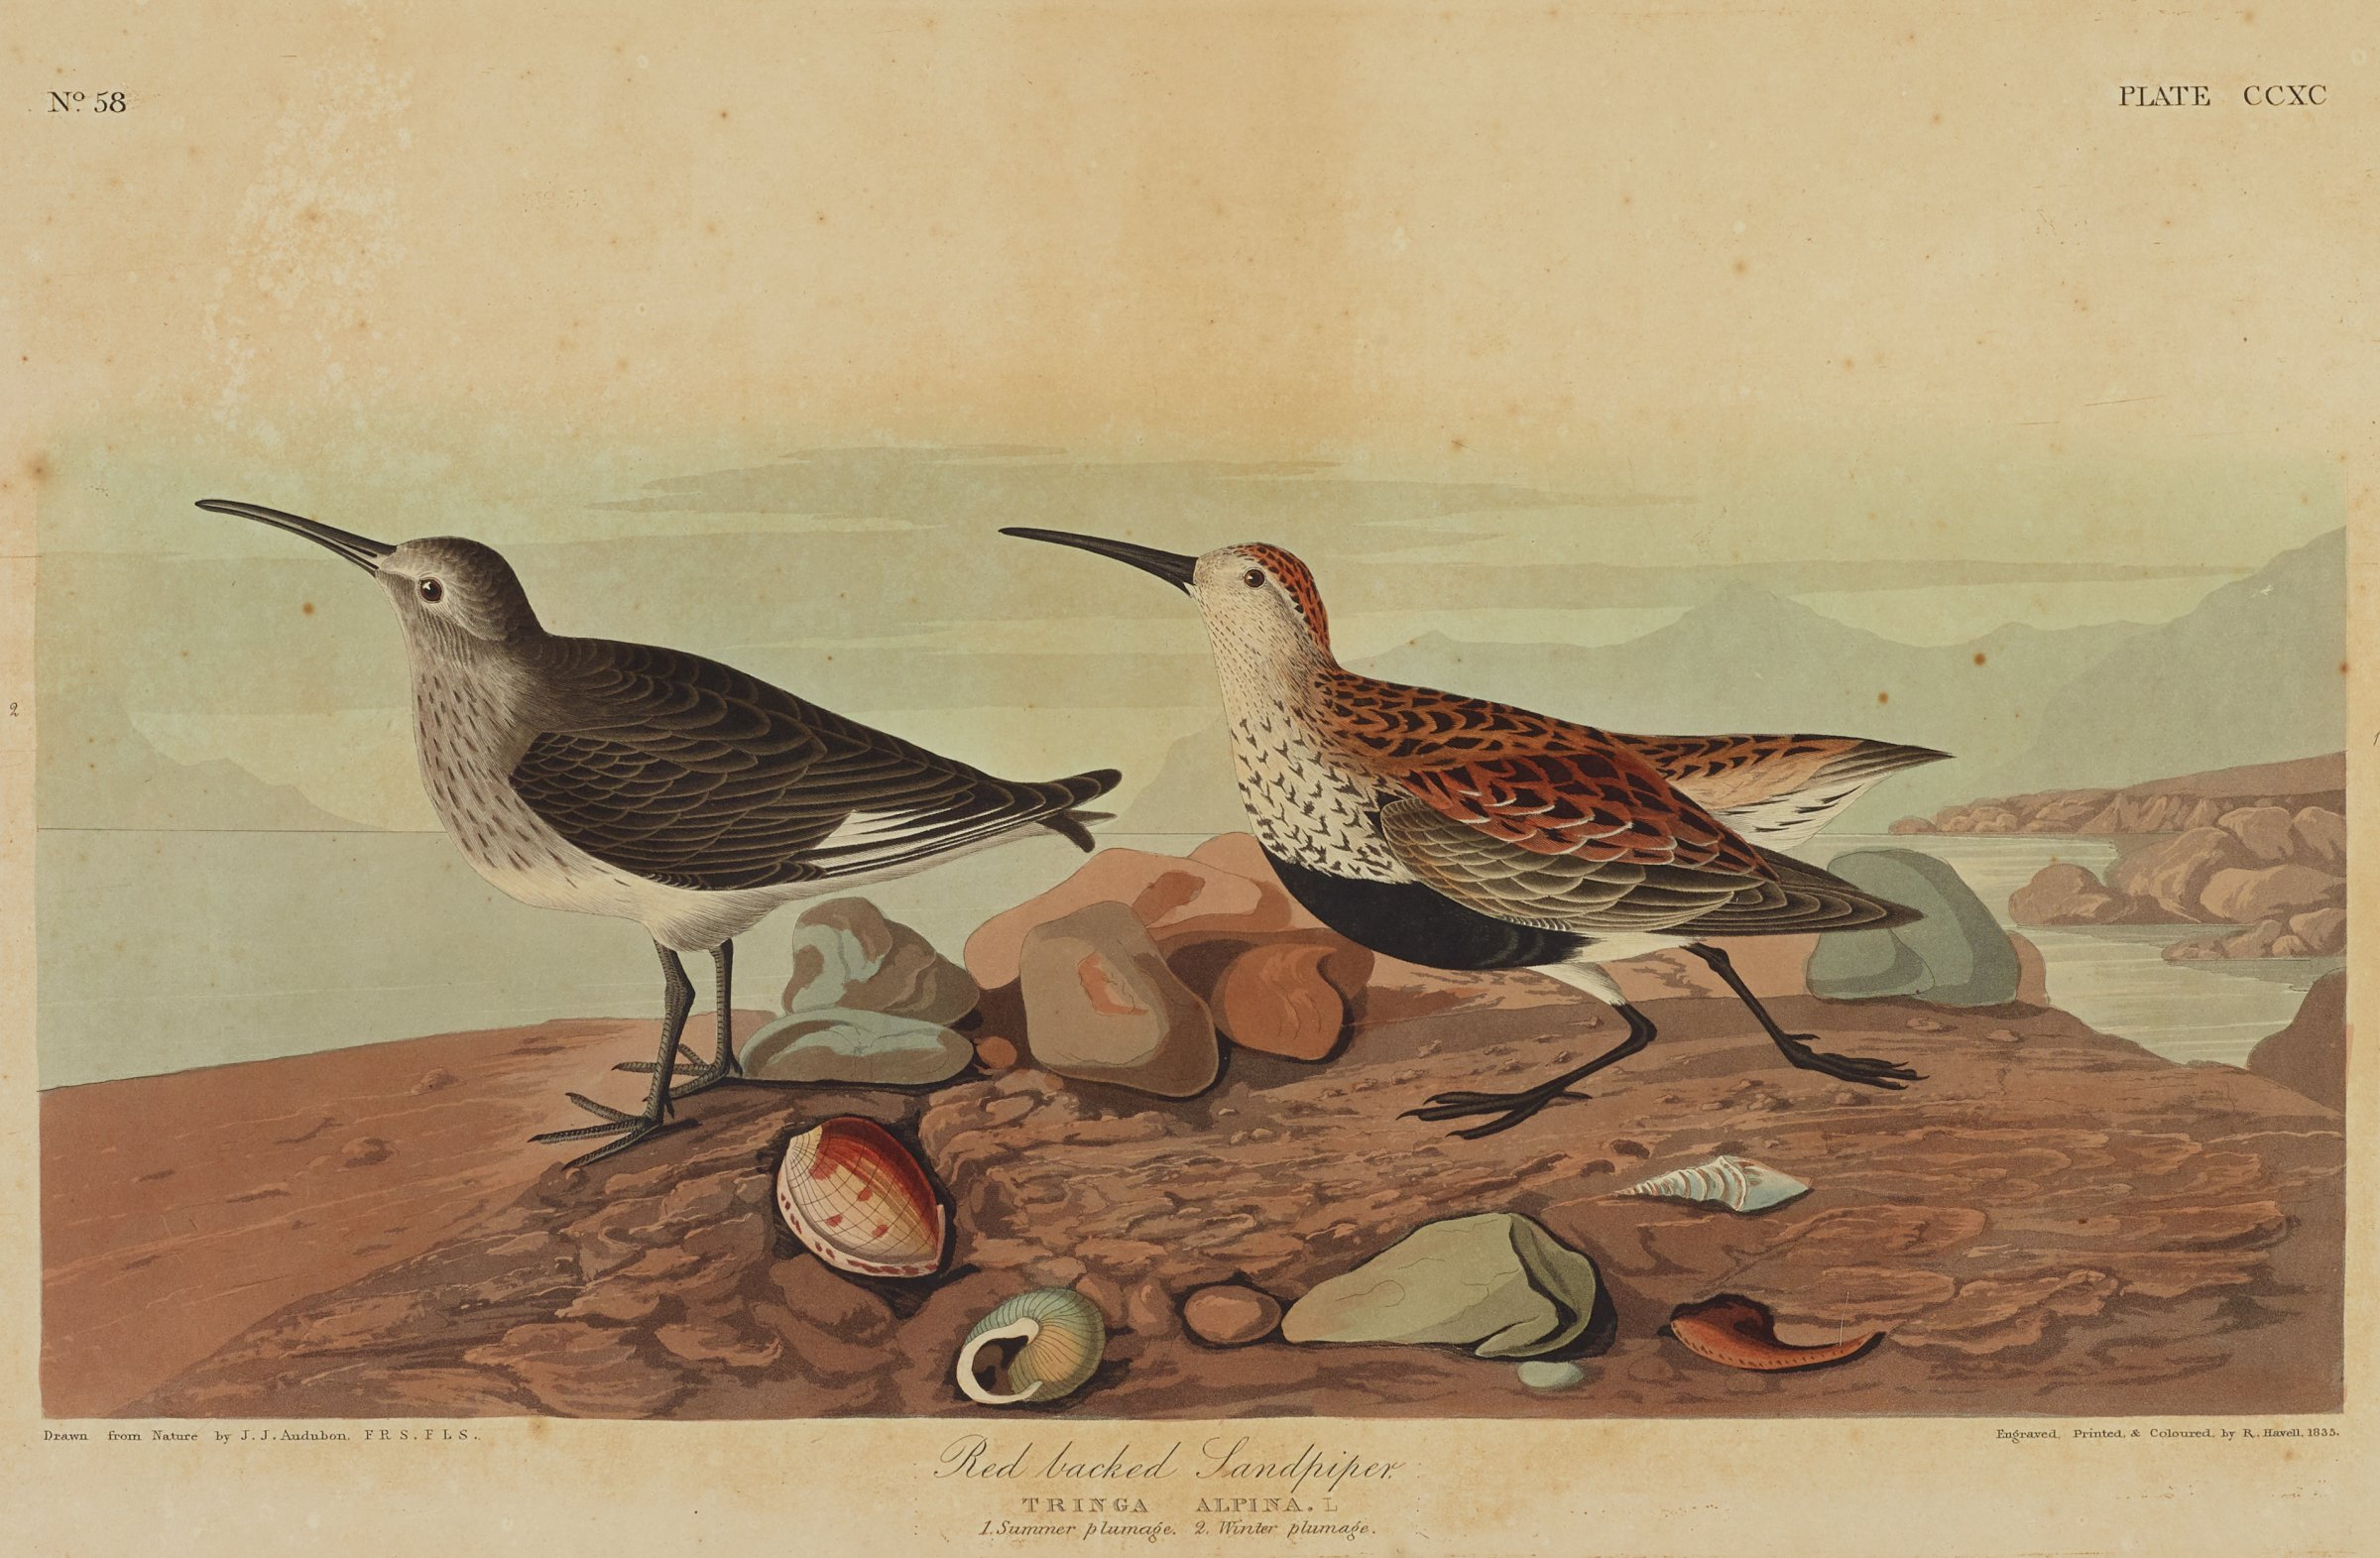 Two birds with long beaks and spotted patterns on their feathers stand on the shoreline of a beach. The ground is scattered with rocks and seashells. In the background are faint impressions of mountains.